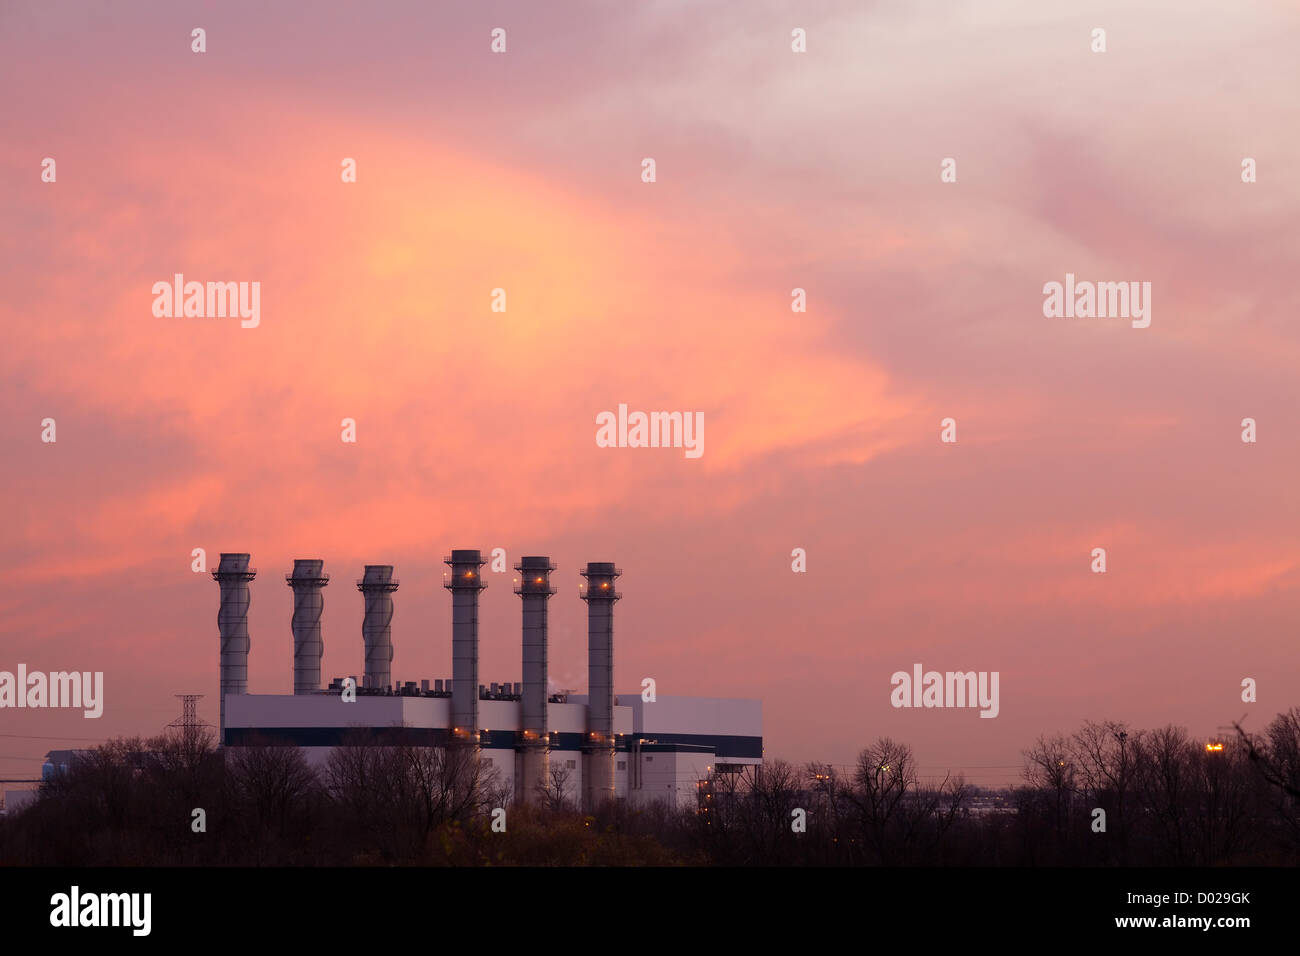 Industrial building at sunset - Stock Image